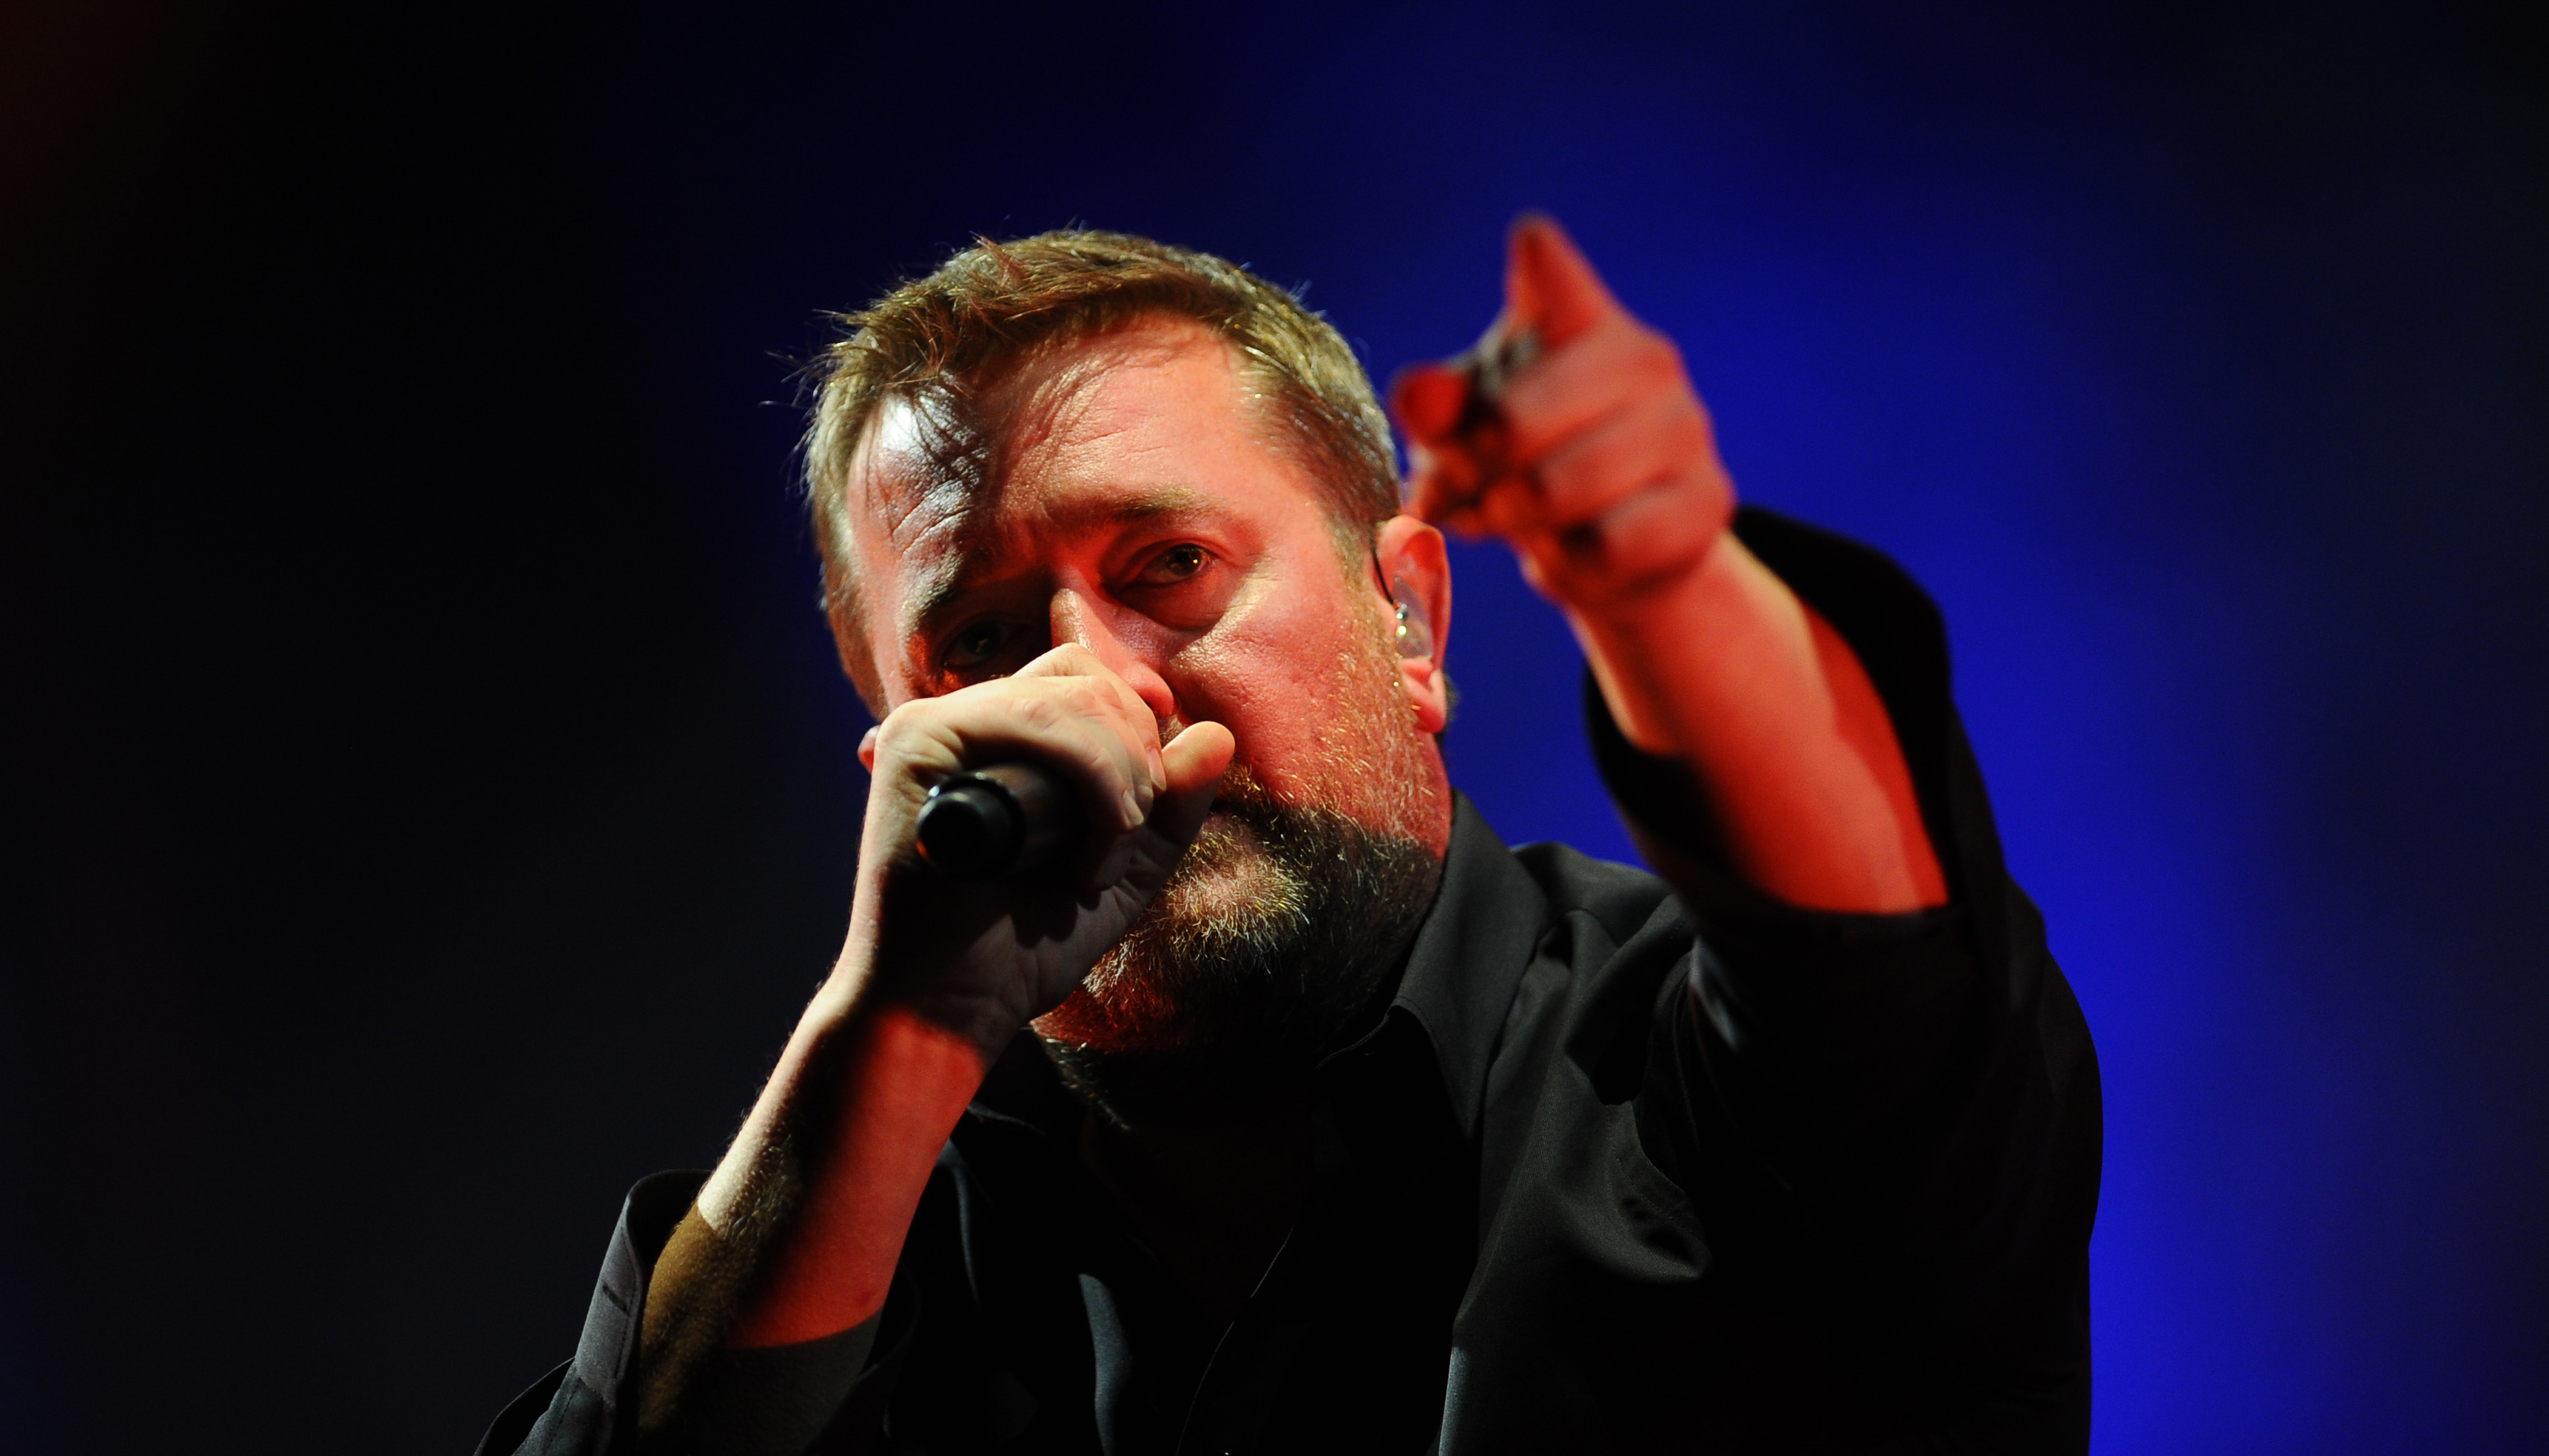 CHELMSFORD, ENGLAND - AUGUST 16: Guy Garvey of Elbow performs on Day 1 of the V Festival at Hylands Park on August 16, 2014 in Chelmsford, England. (Photo by Stuart C. Wilson/Getty Images)